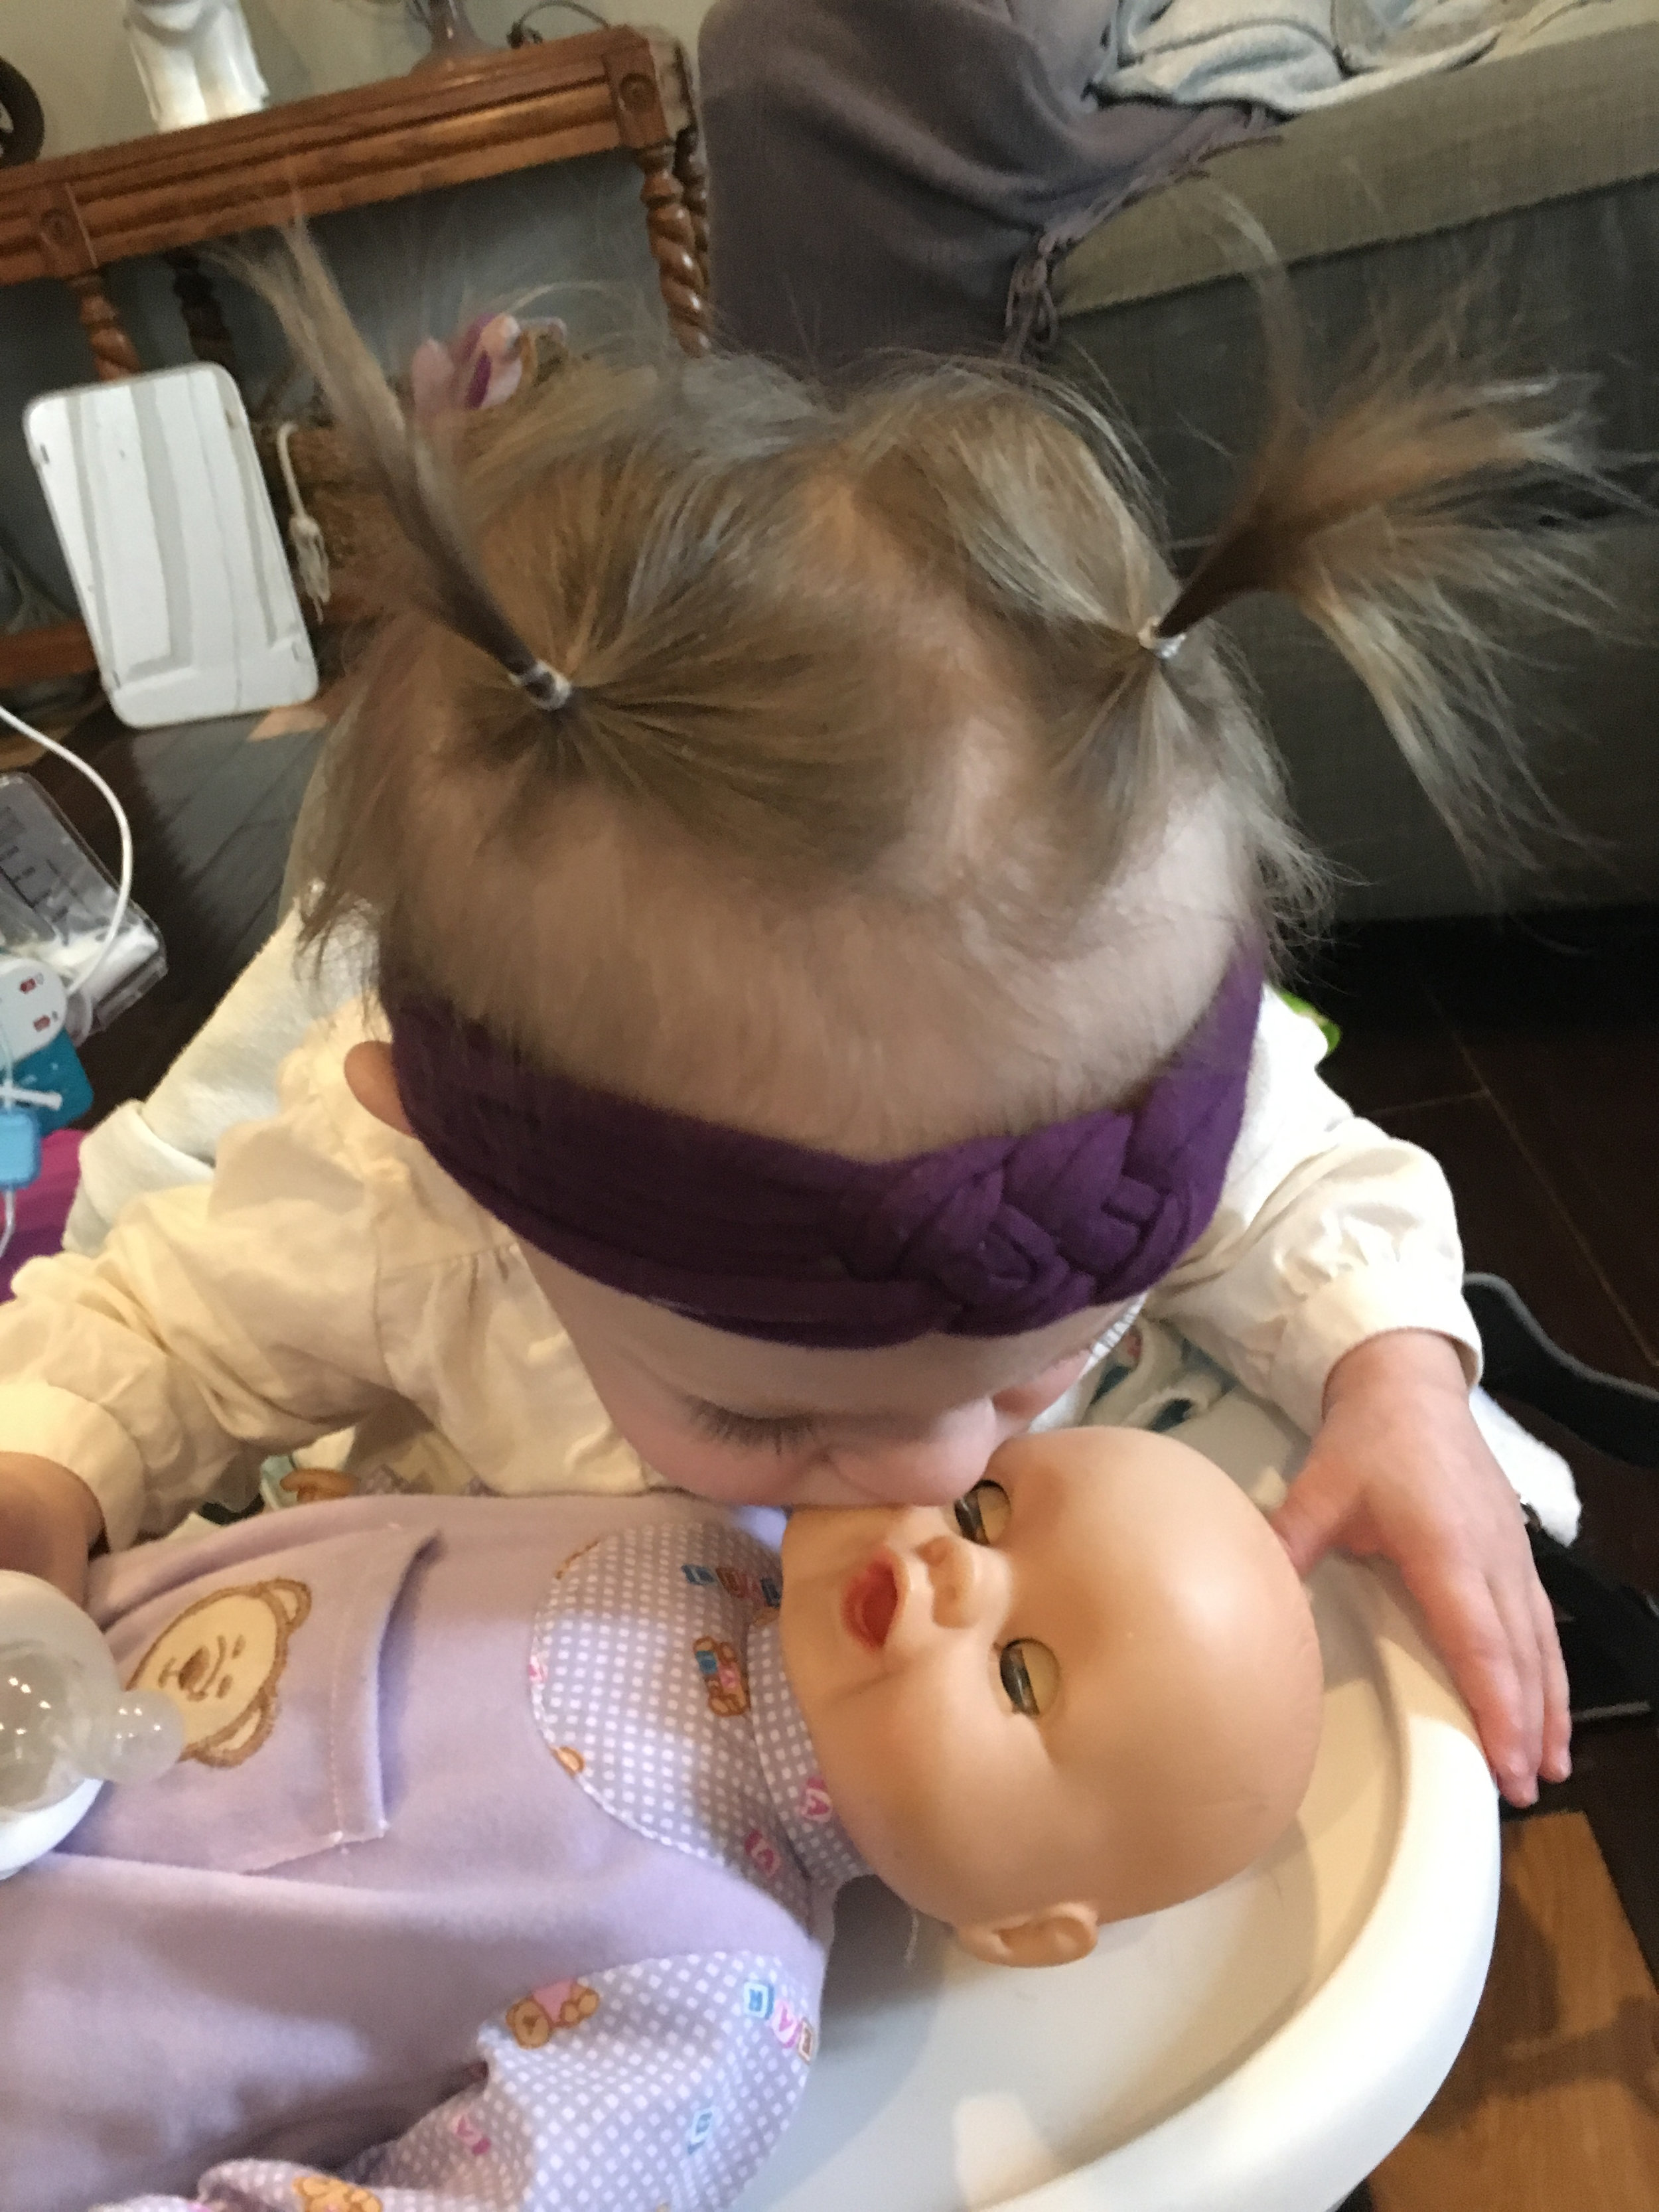 """Baby Dolls - Every child should have a baby doll and that includes boys and for the purpose developing language I would not recommend a doll that talks, eats, needs batteries, etc. I love a doll for so many skills; language, cognitive, fine motor, and self-help skills. Dolls can be used to teach body parts, receptively or expressively. It also shows them their nose does not just apply to their own nose. Use the doll to teach basic concepts such as prepositions; baby in the bed, baby under the blanket. Use the doll to teach verbs or feelings; eat, drink, sleep, sit, stand, hungry, sleepy, thirsty, and more. You can ask your child questions to work on his understanding of these words while he plays. """"Where is baby?"""""""